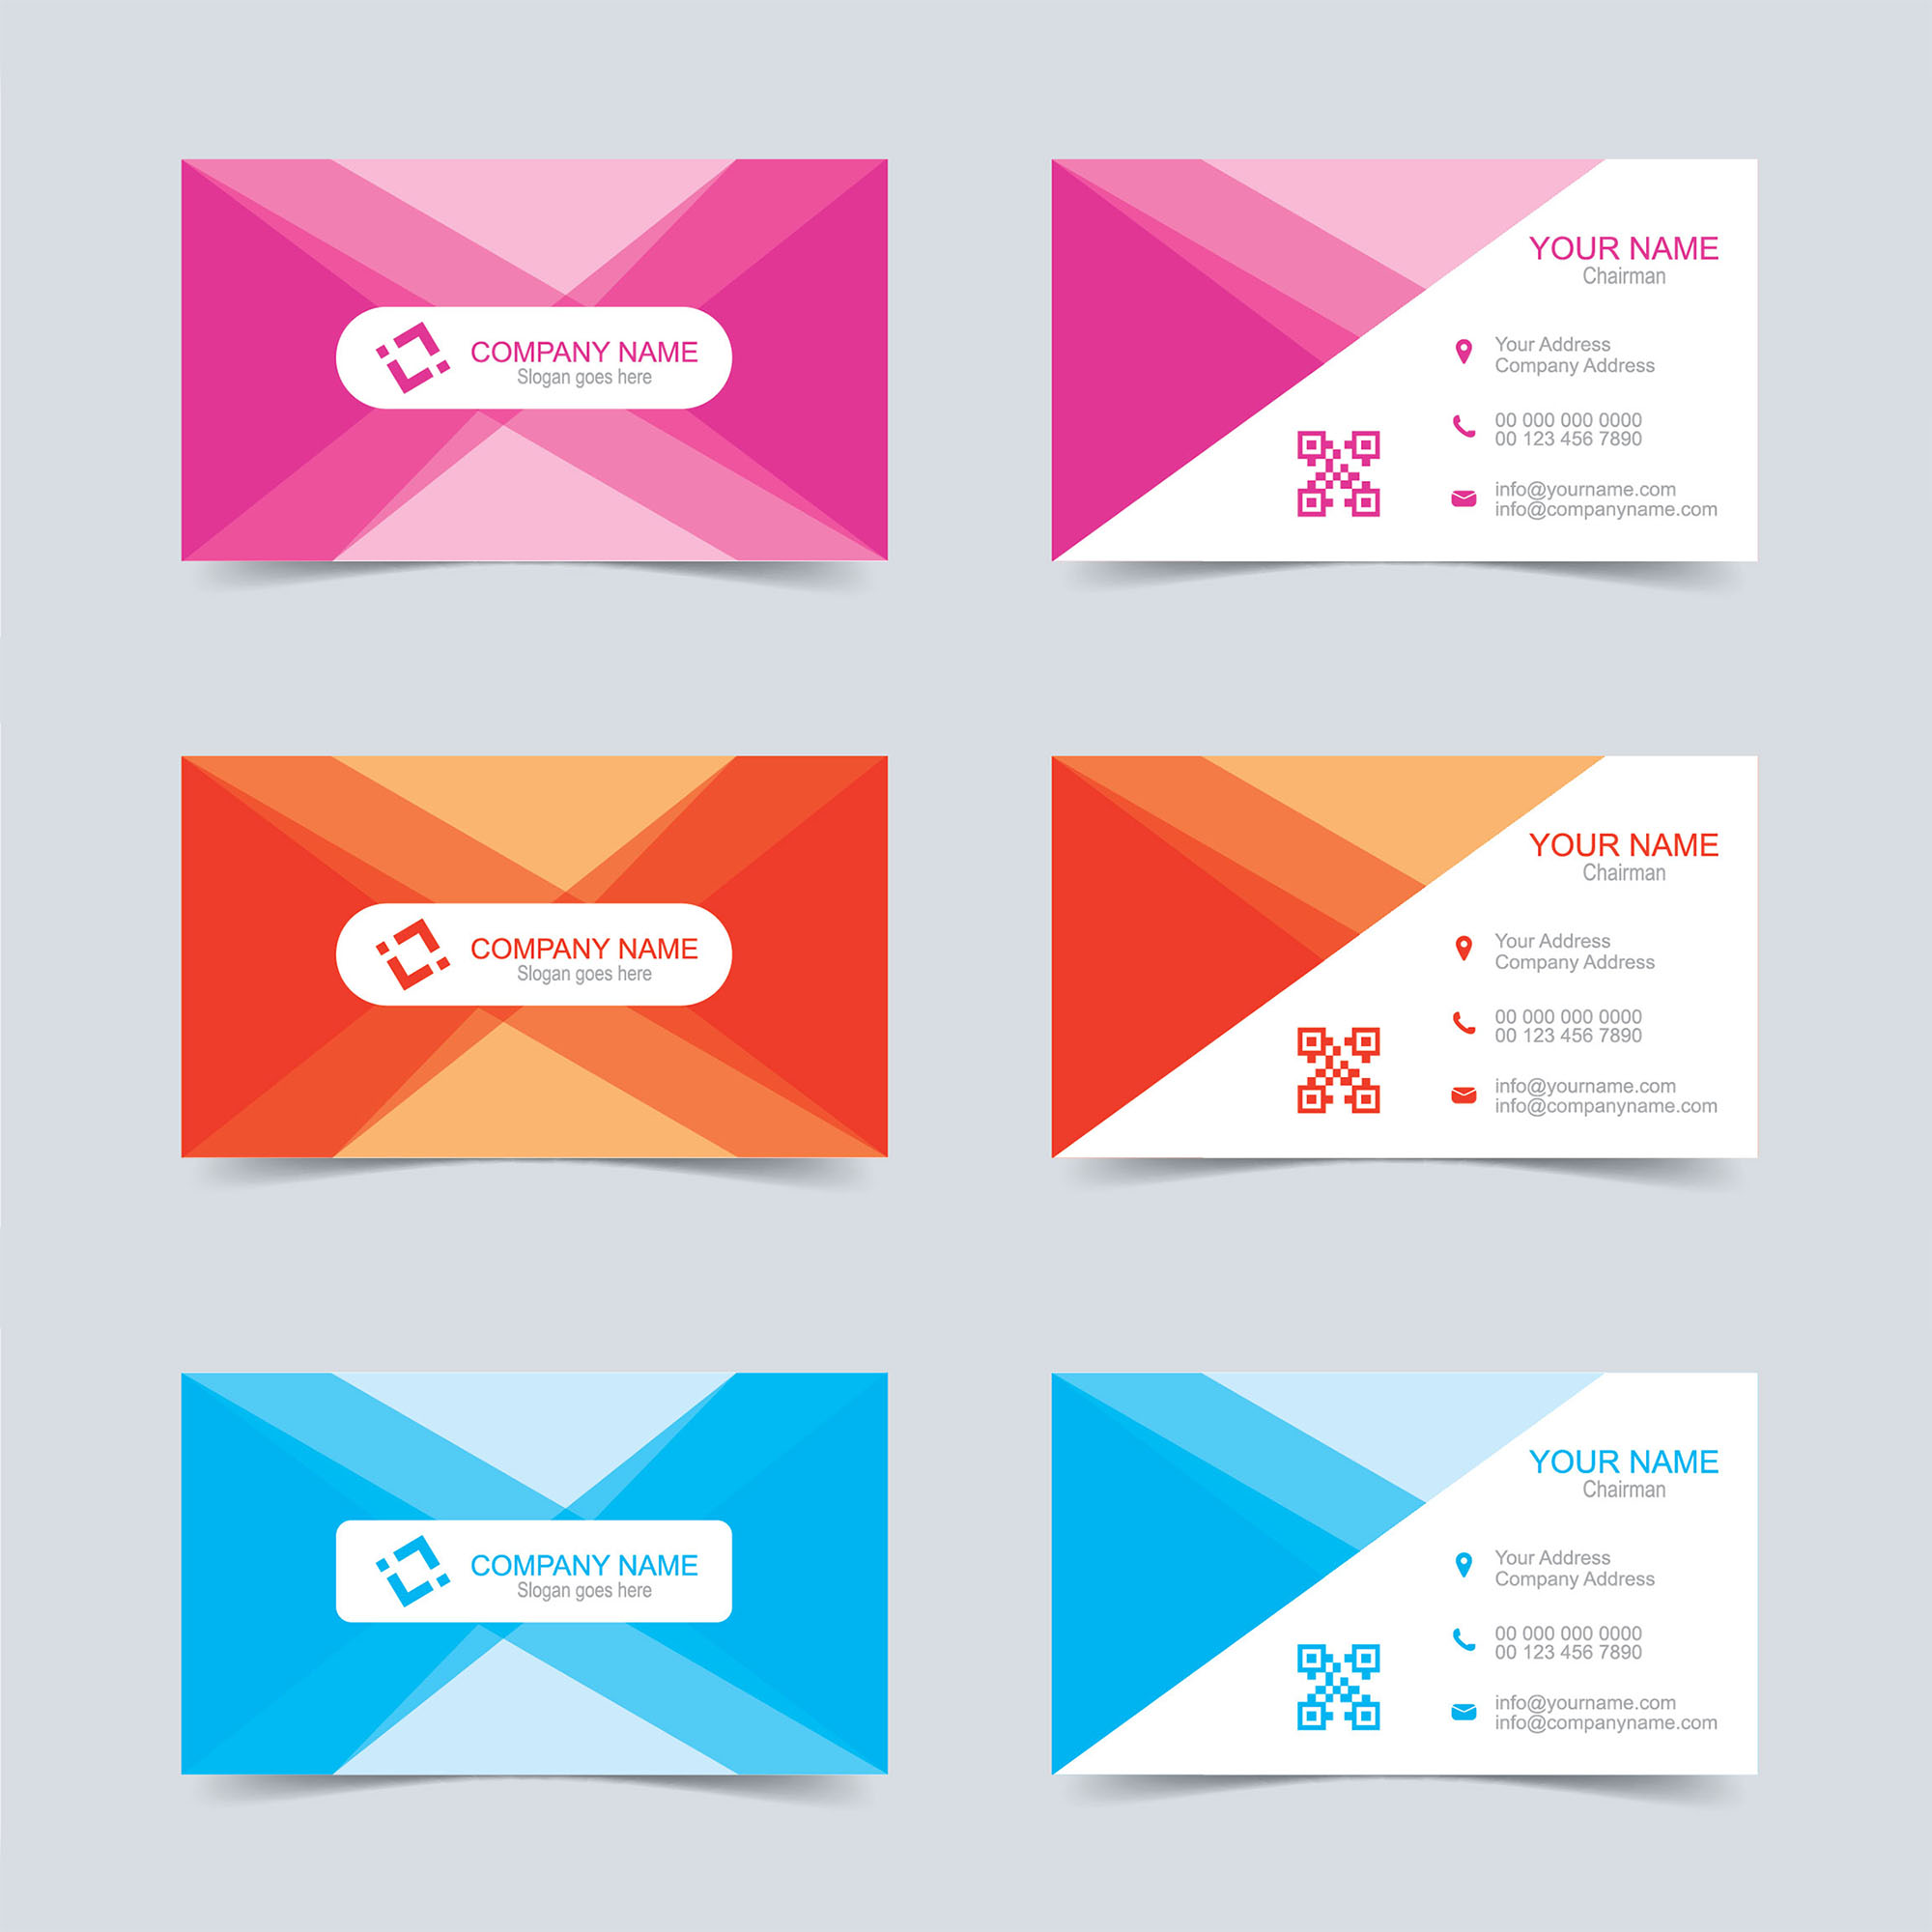 Vector Business Card Template Free Download Wisxicom - Free business card layout template